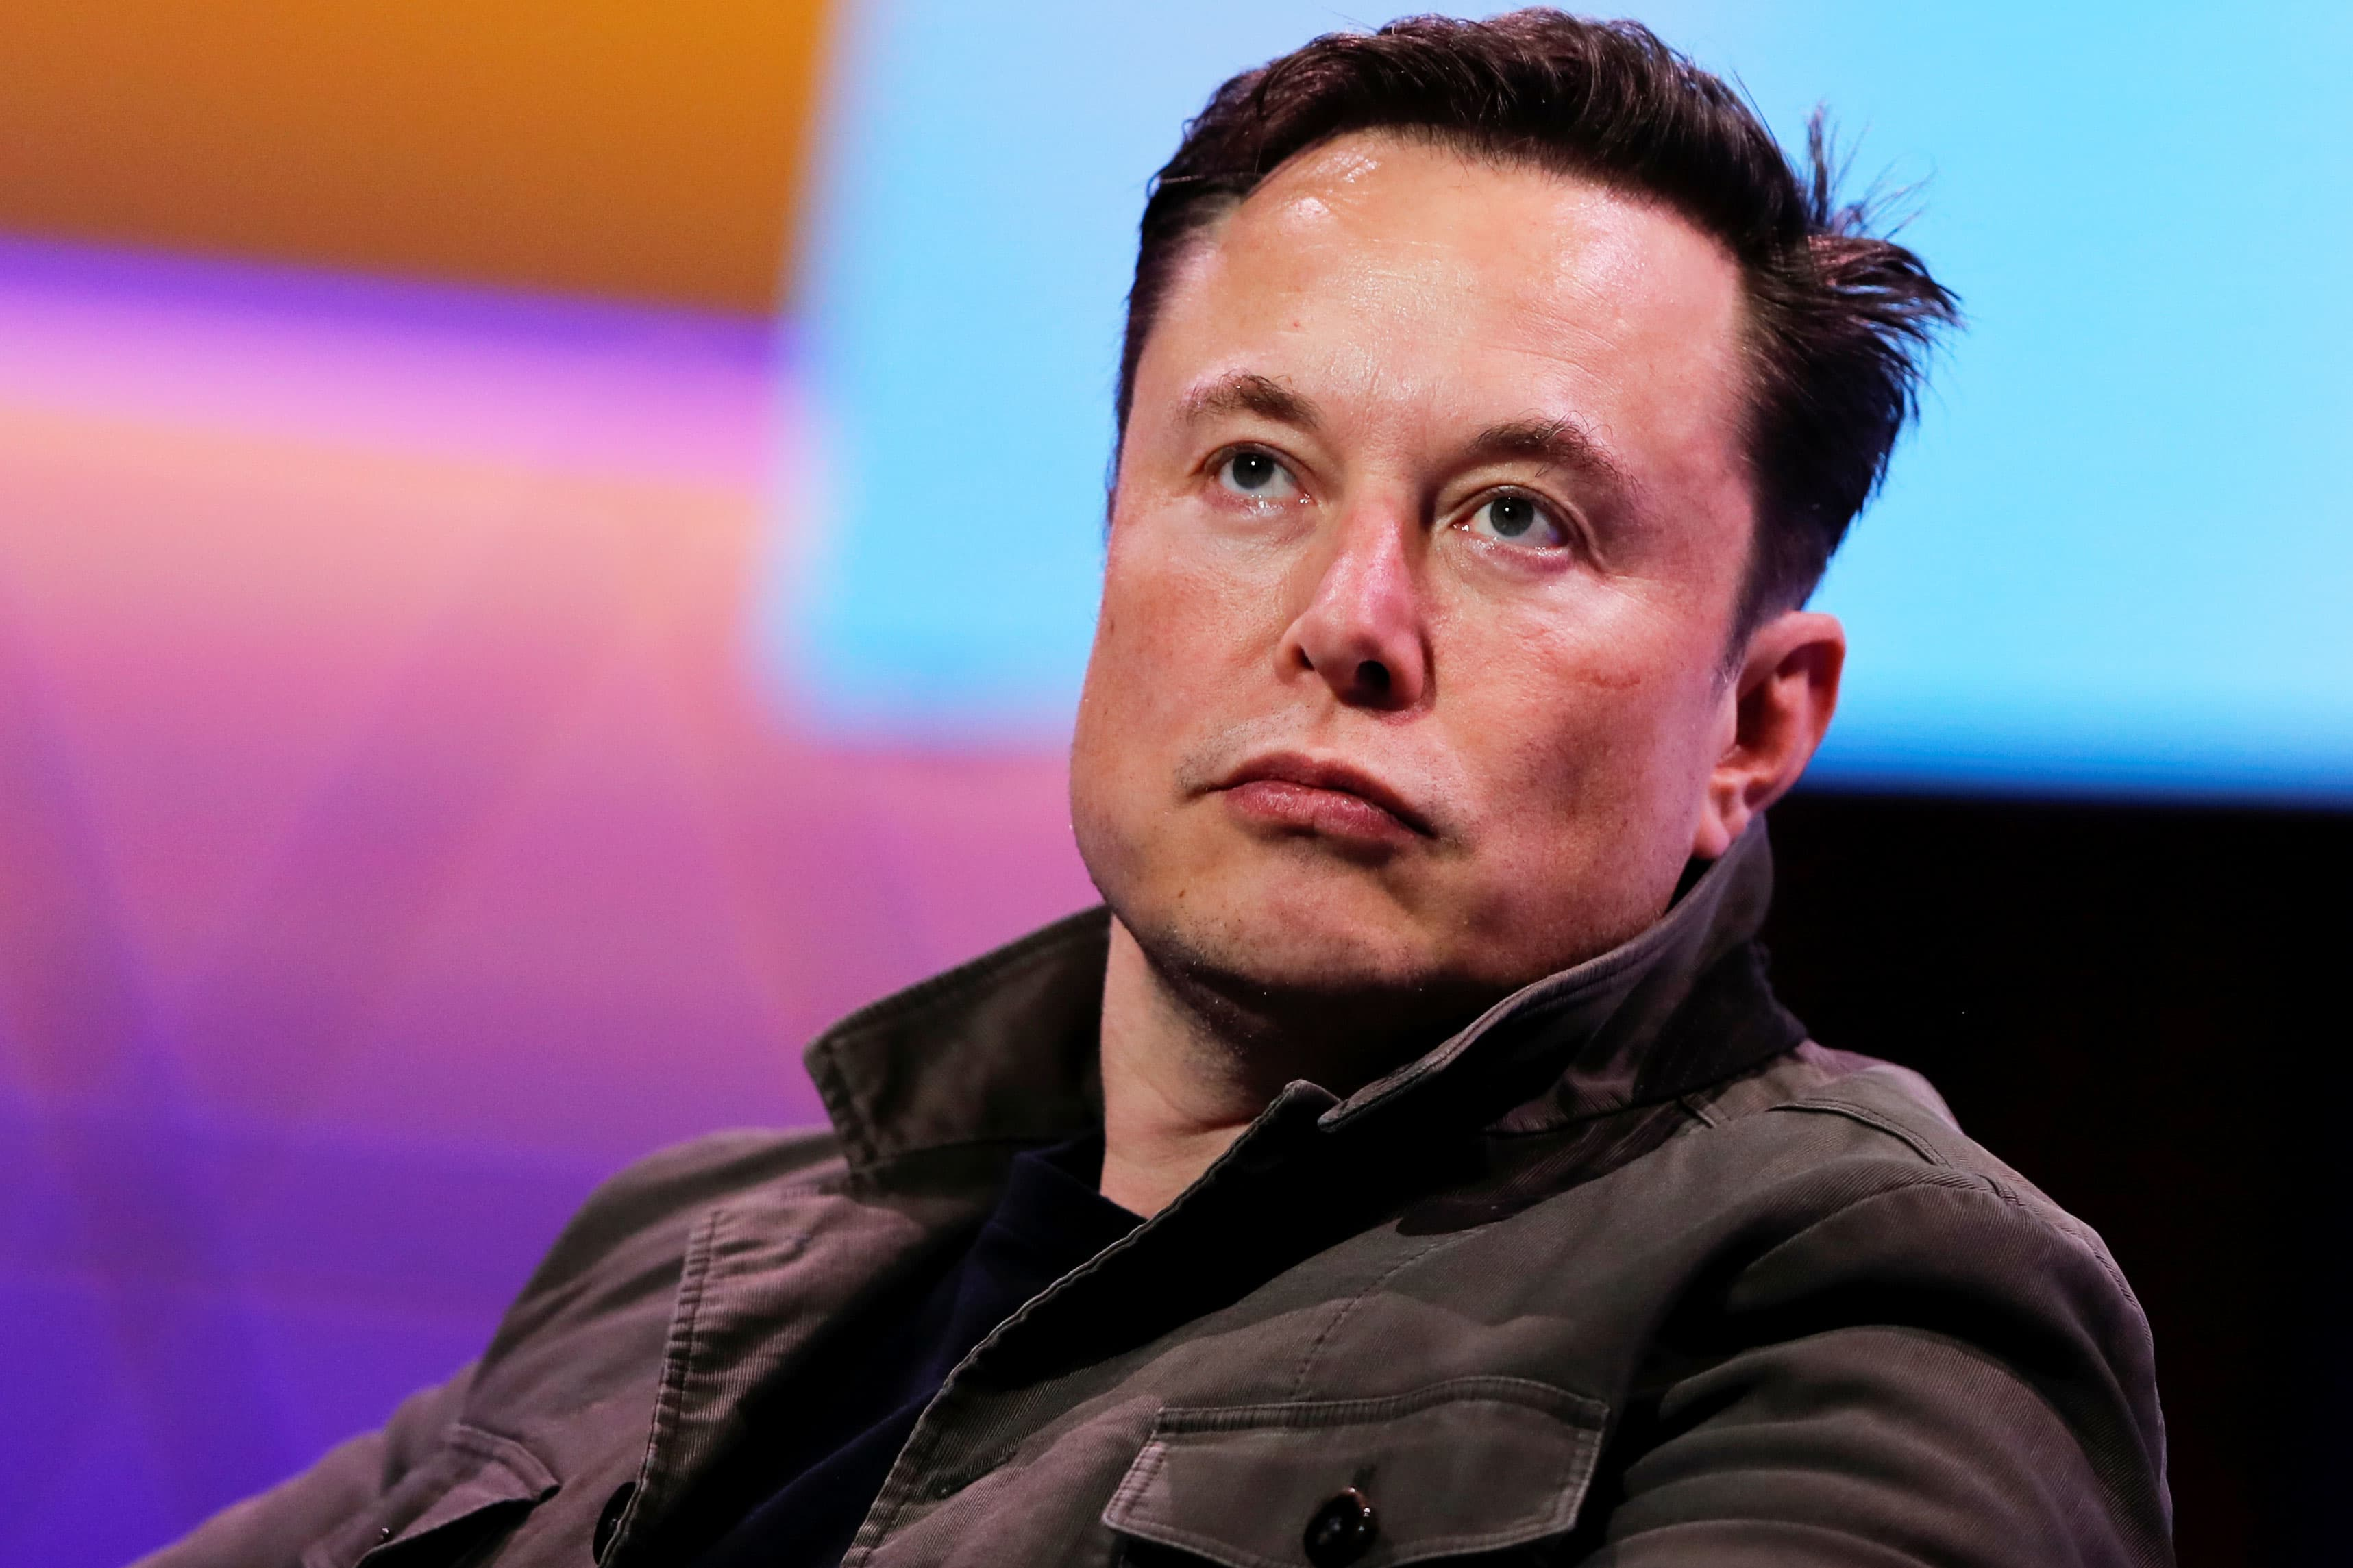 Tesla could see shares reverse in fourth quarter, says major bear who has a $300 target on the stock